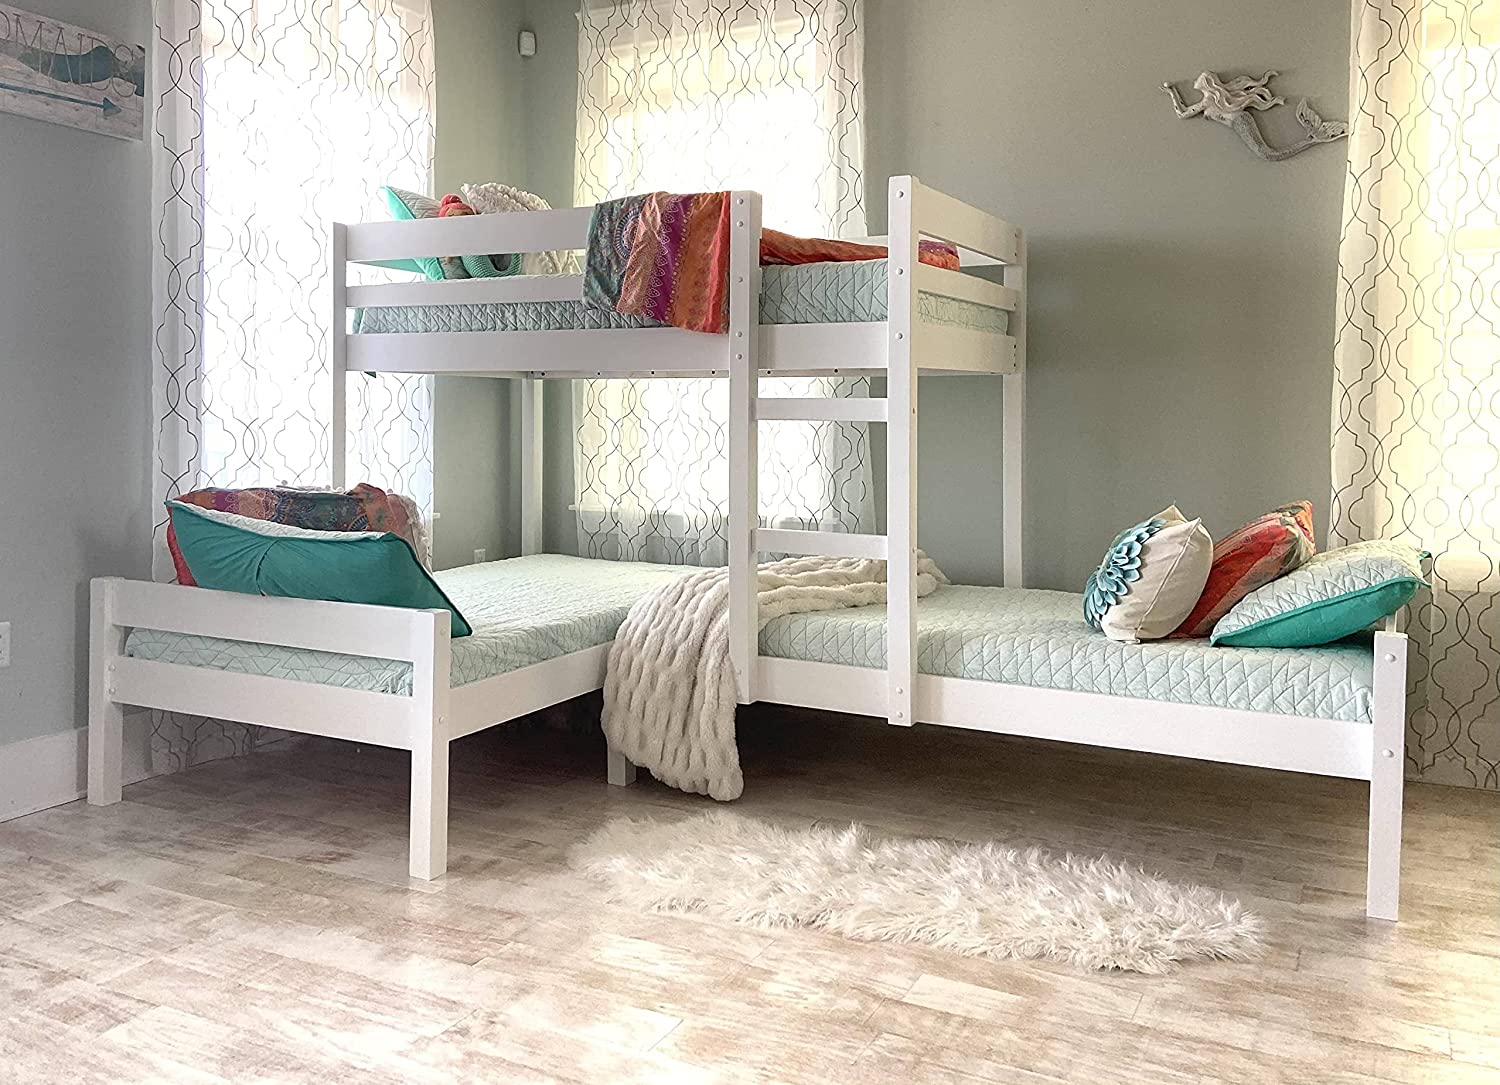 Amazon Com Nora Corner Twin Over Twin 3 Bunk Beds L Shaped Bunk Bed With Ladder Guardrail Wood Triple Bunk Beds For Kids No Box Spring Required White Kitchen Dining